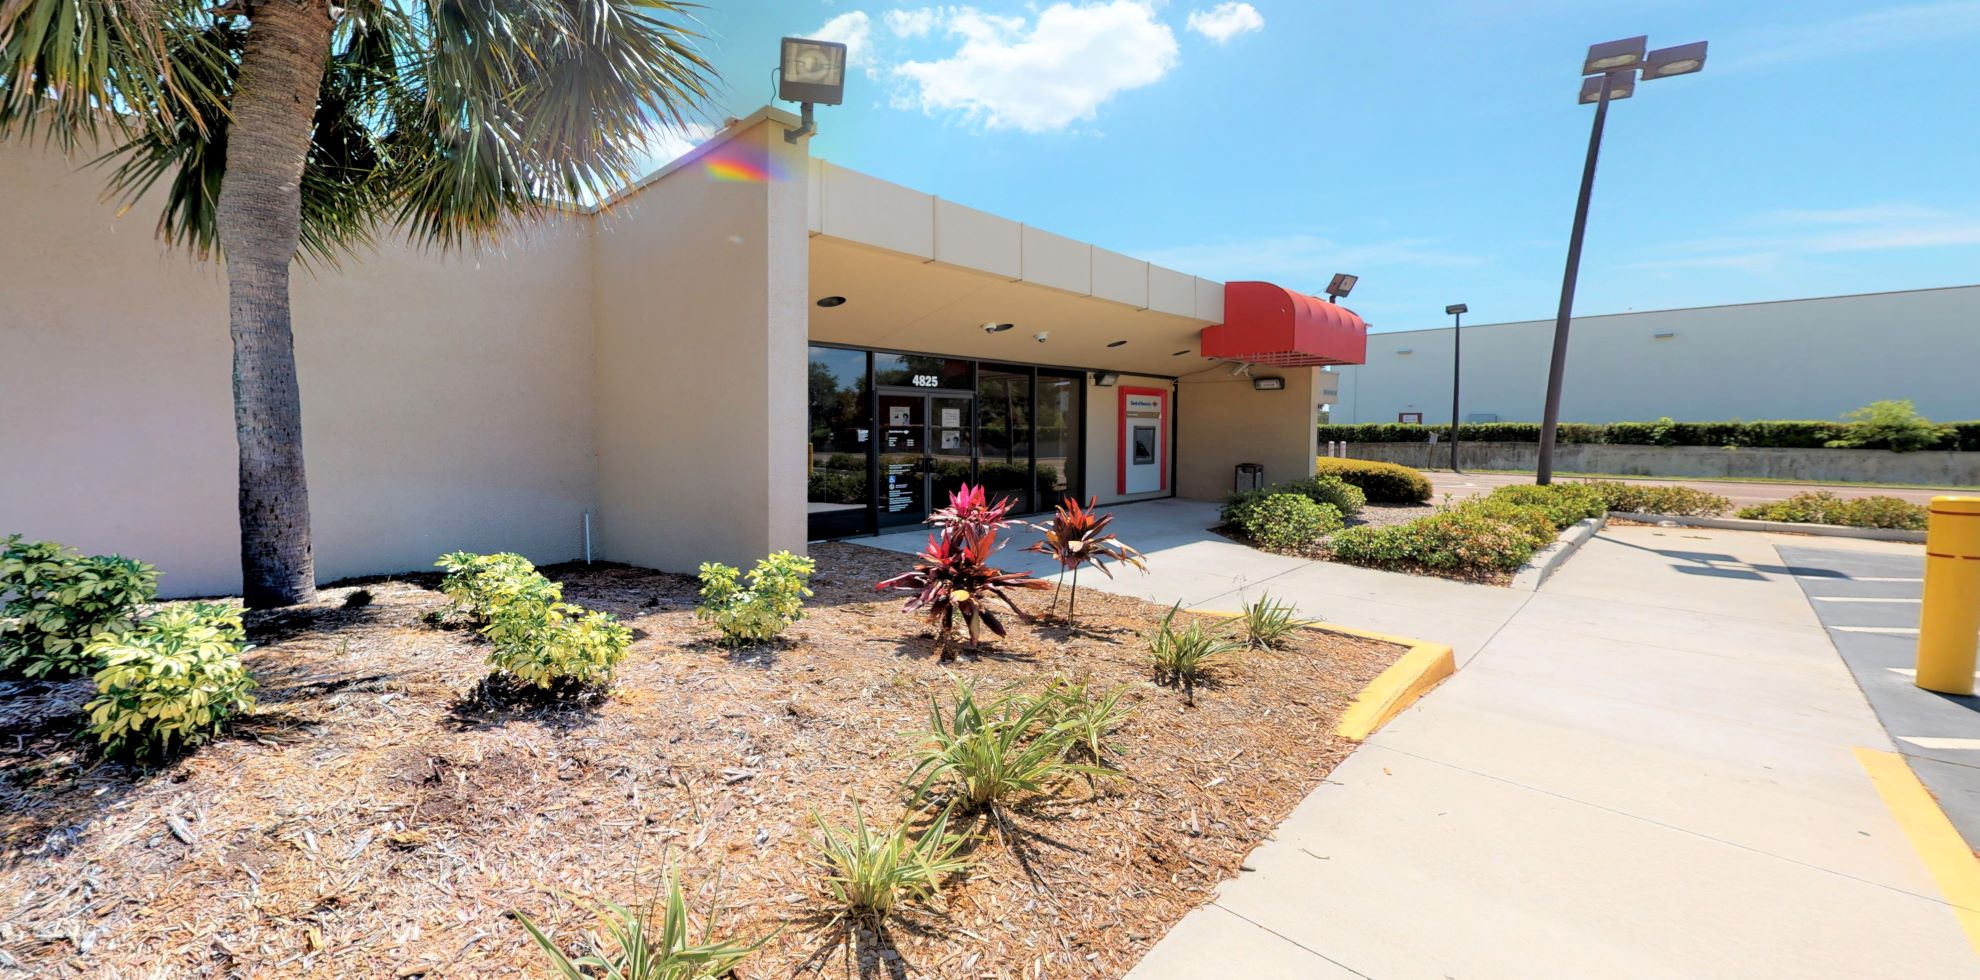 Bank of America financial center with drive-thru ATM   4825 S Manhattan Ave, Tampa, FL 33611